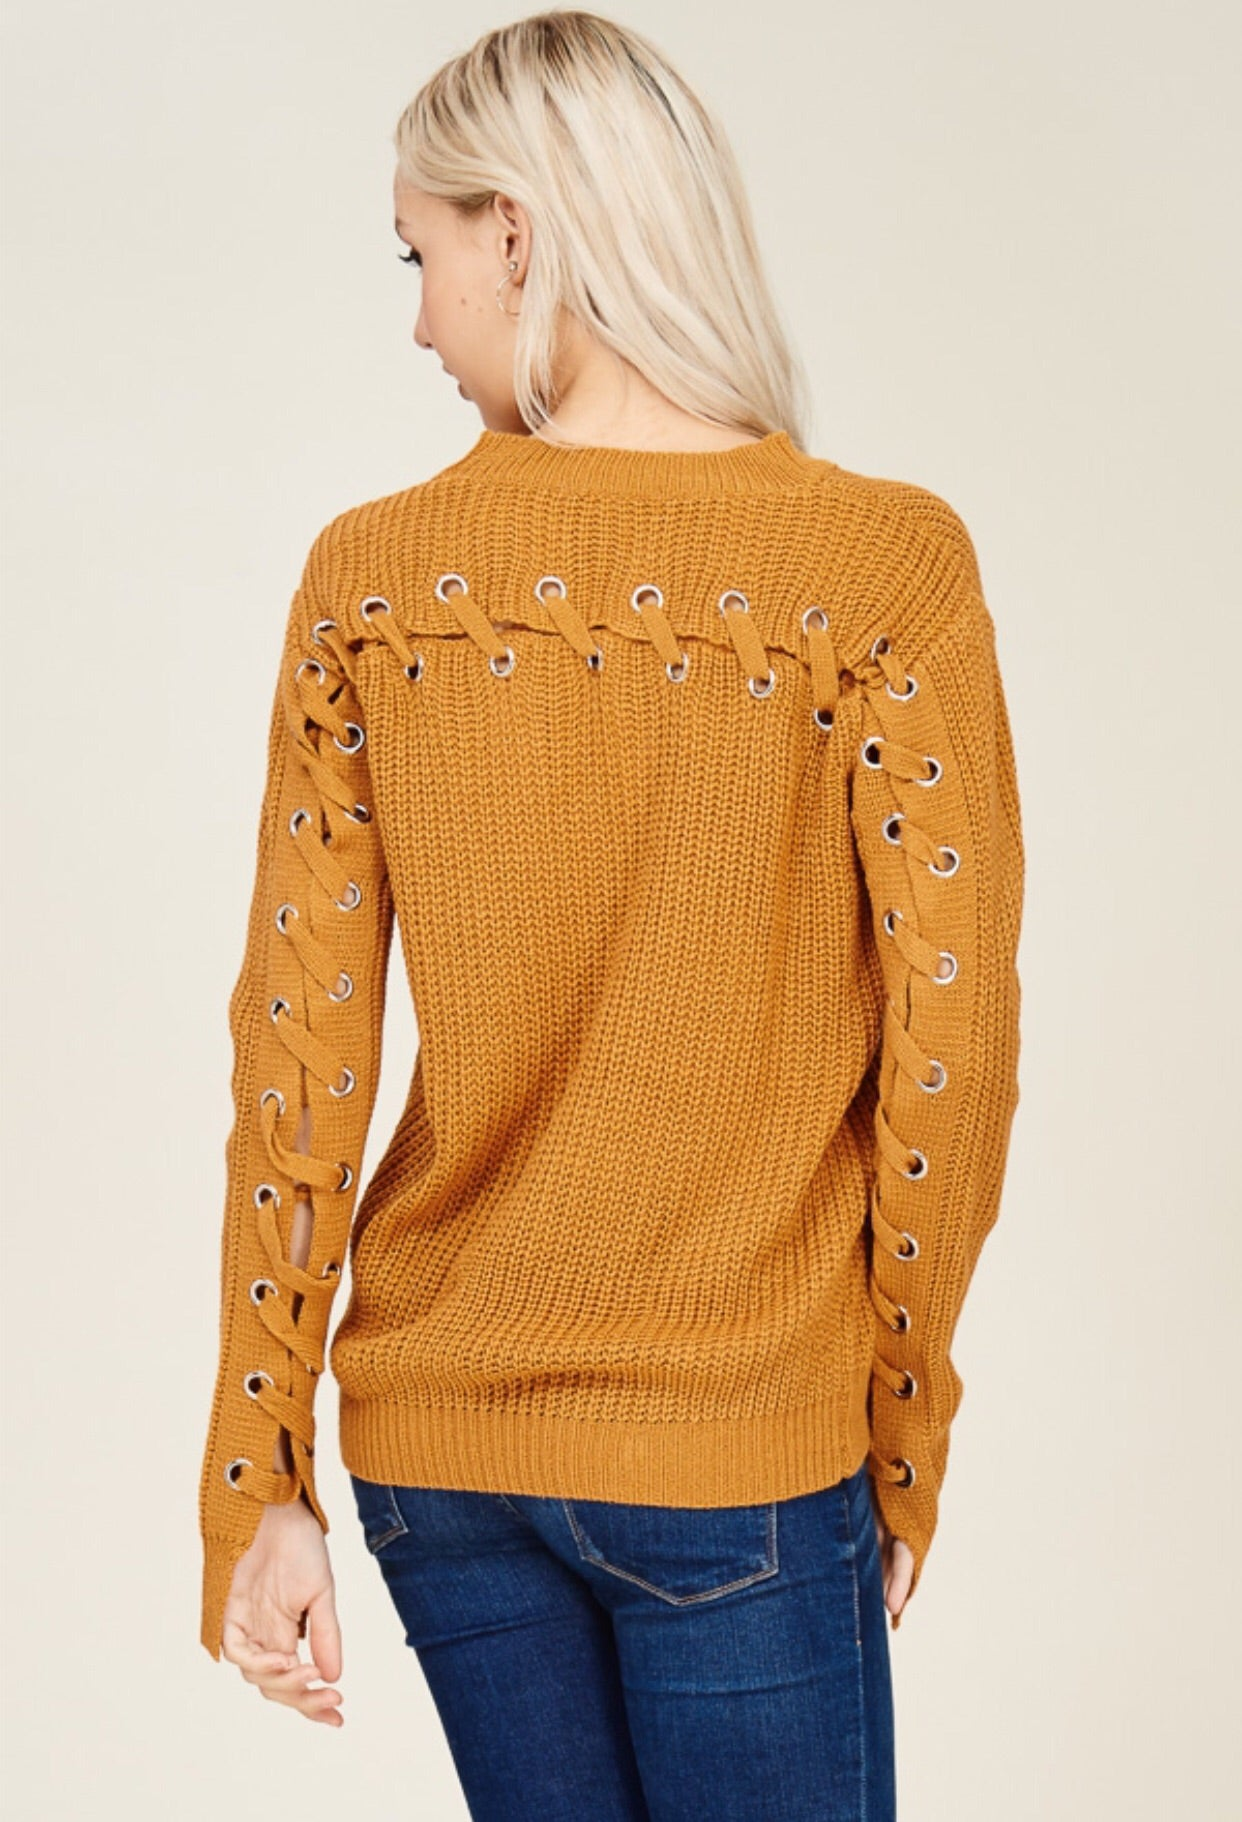 Turmeric Lace Up Sweater